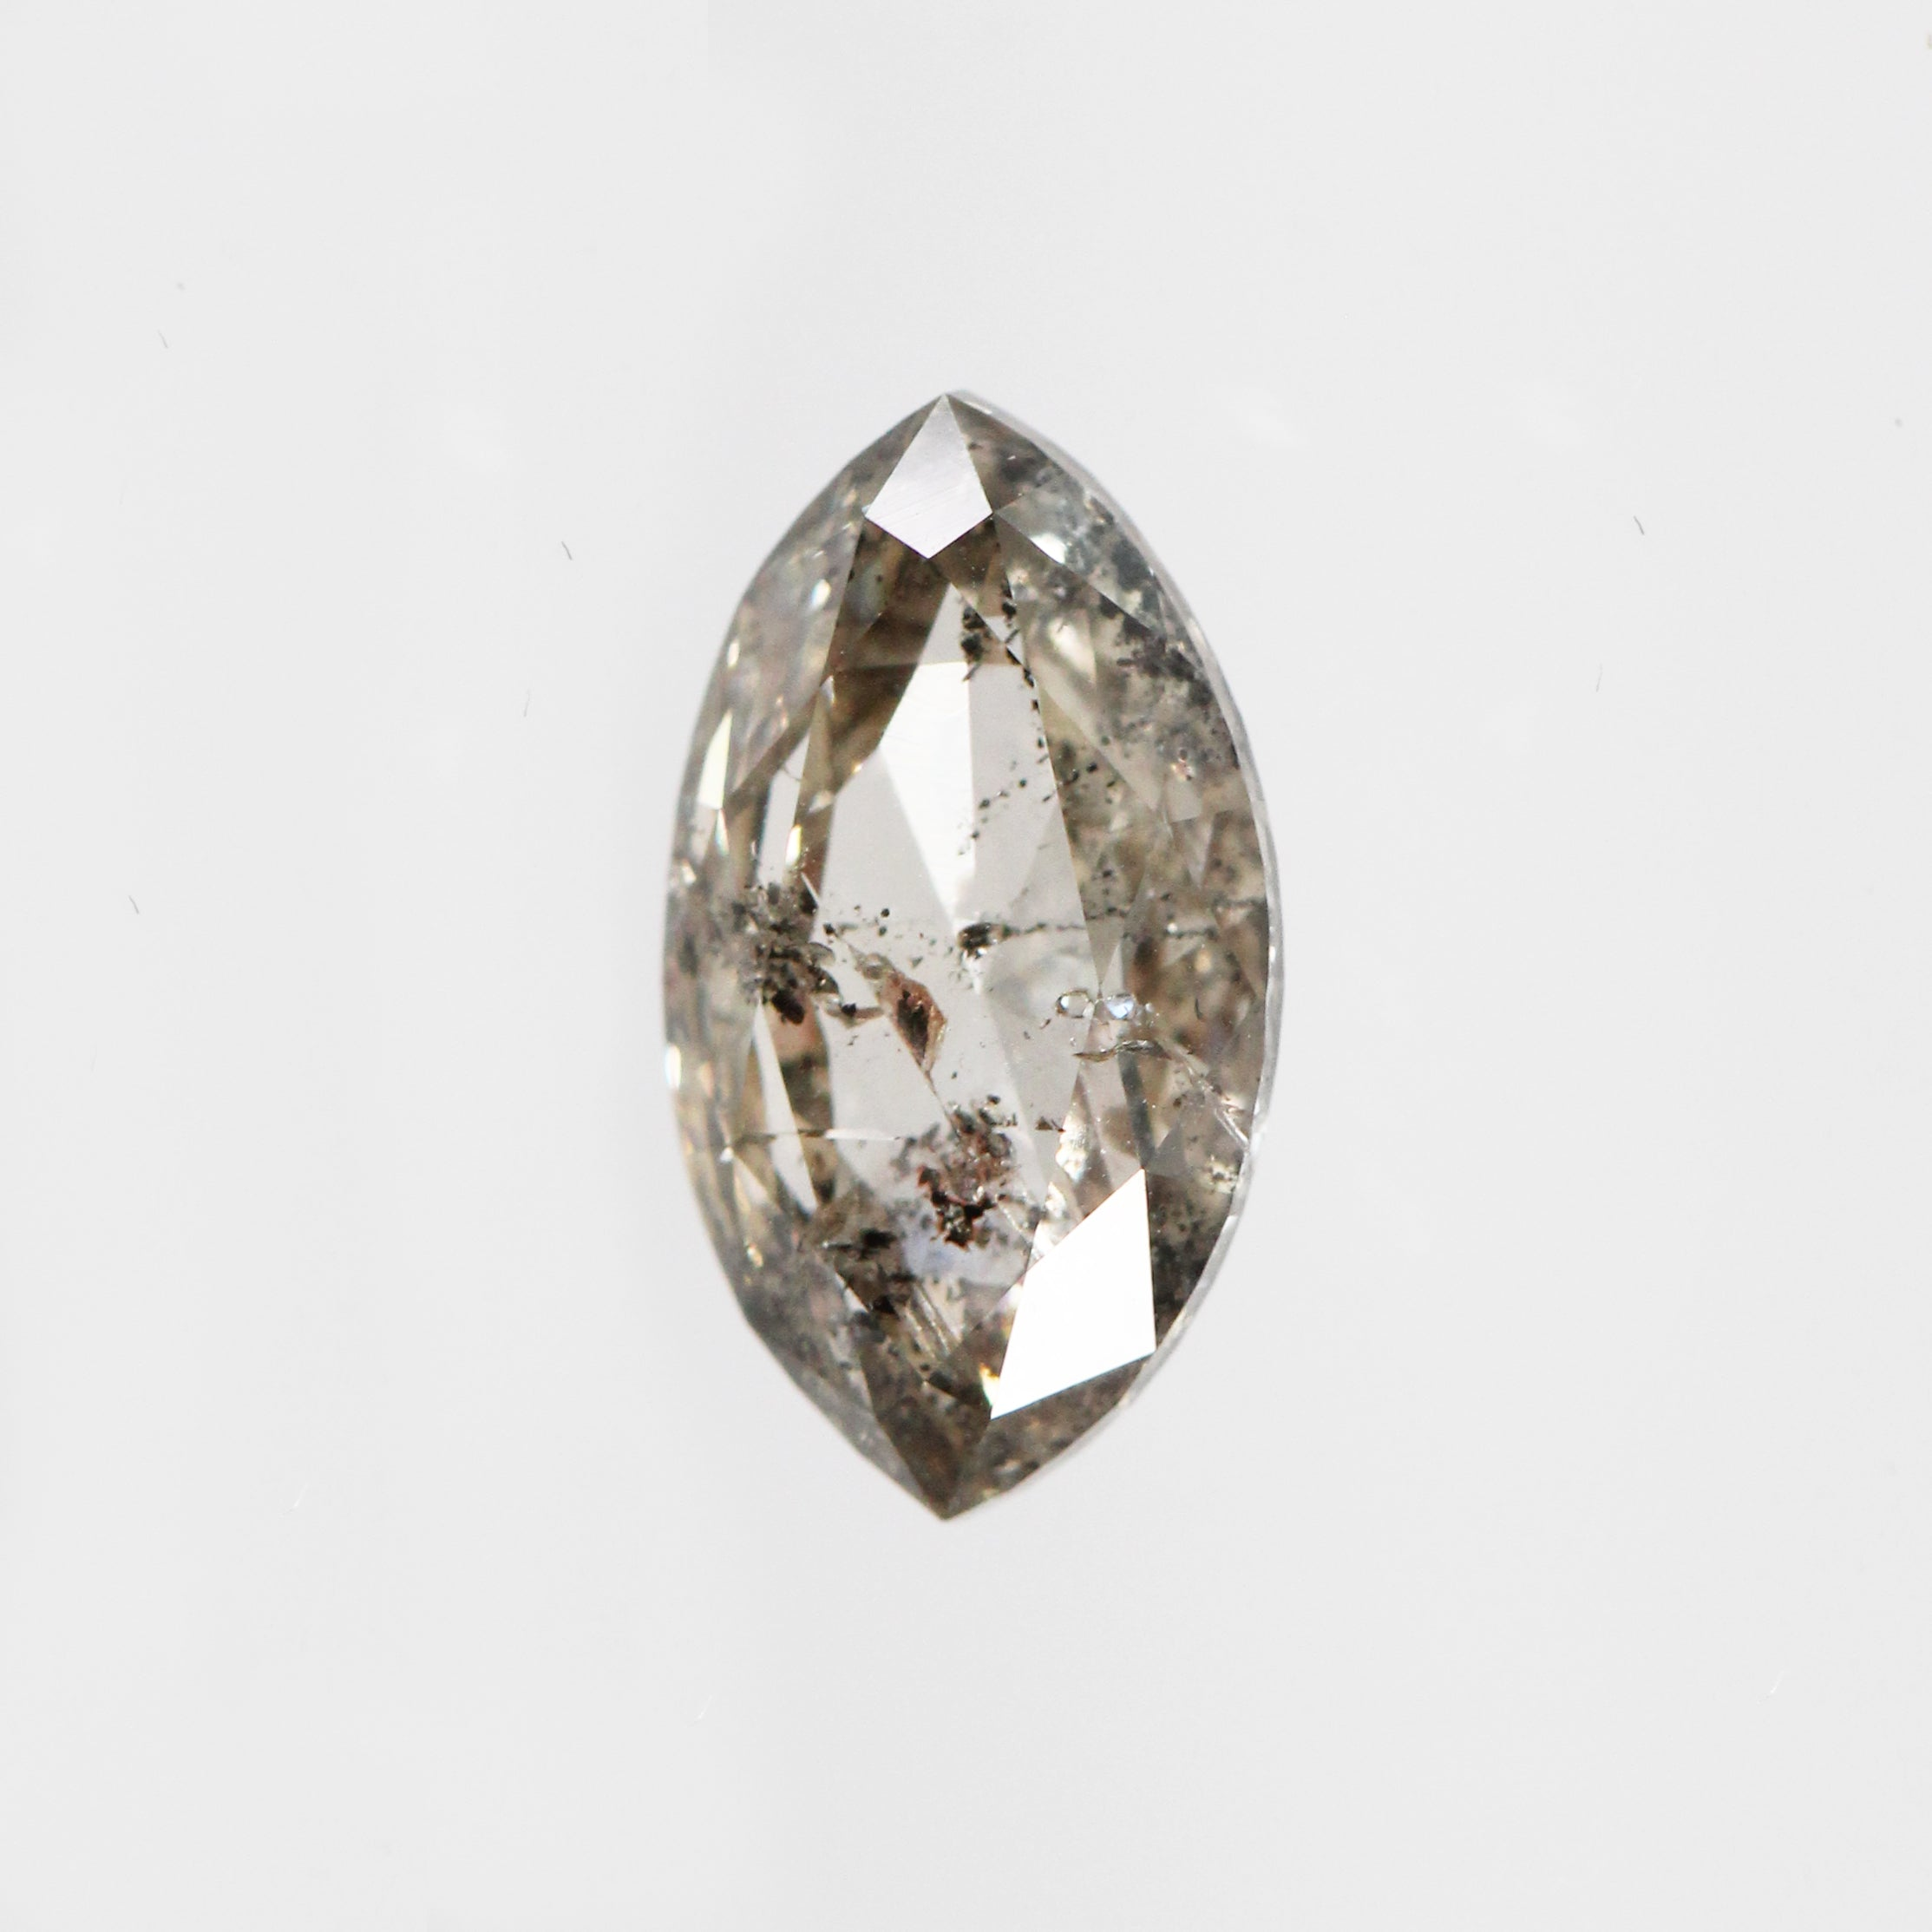 2.40 Carat Marquise Celestial Diamond for Custom Work - Inventory Code MBCB240 - Celestial Diamonds ® by Midwinter Co.